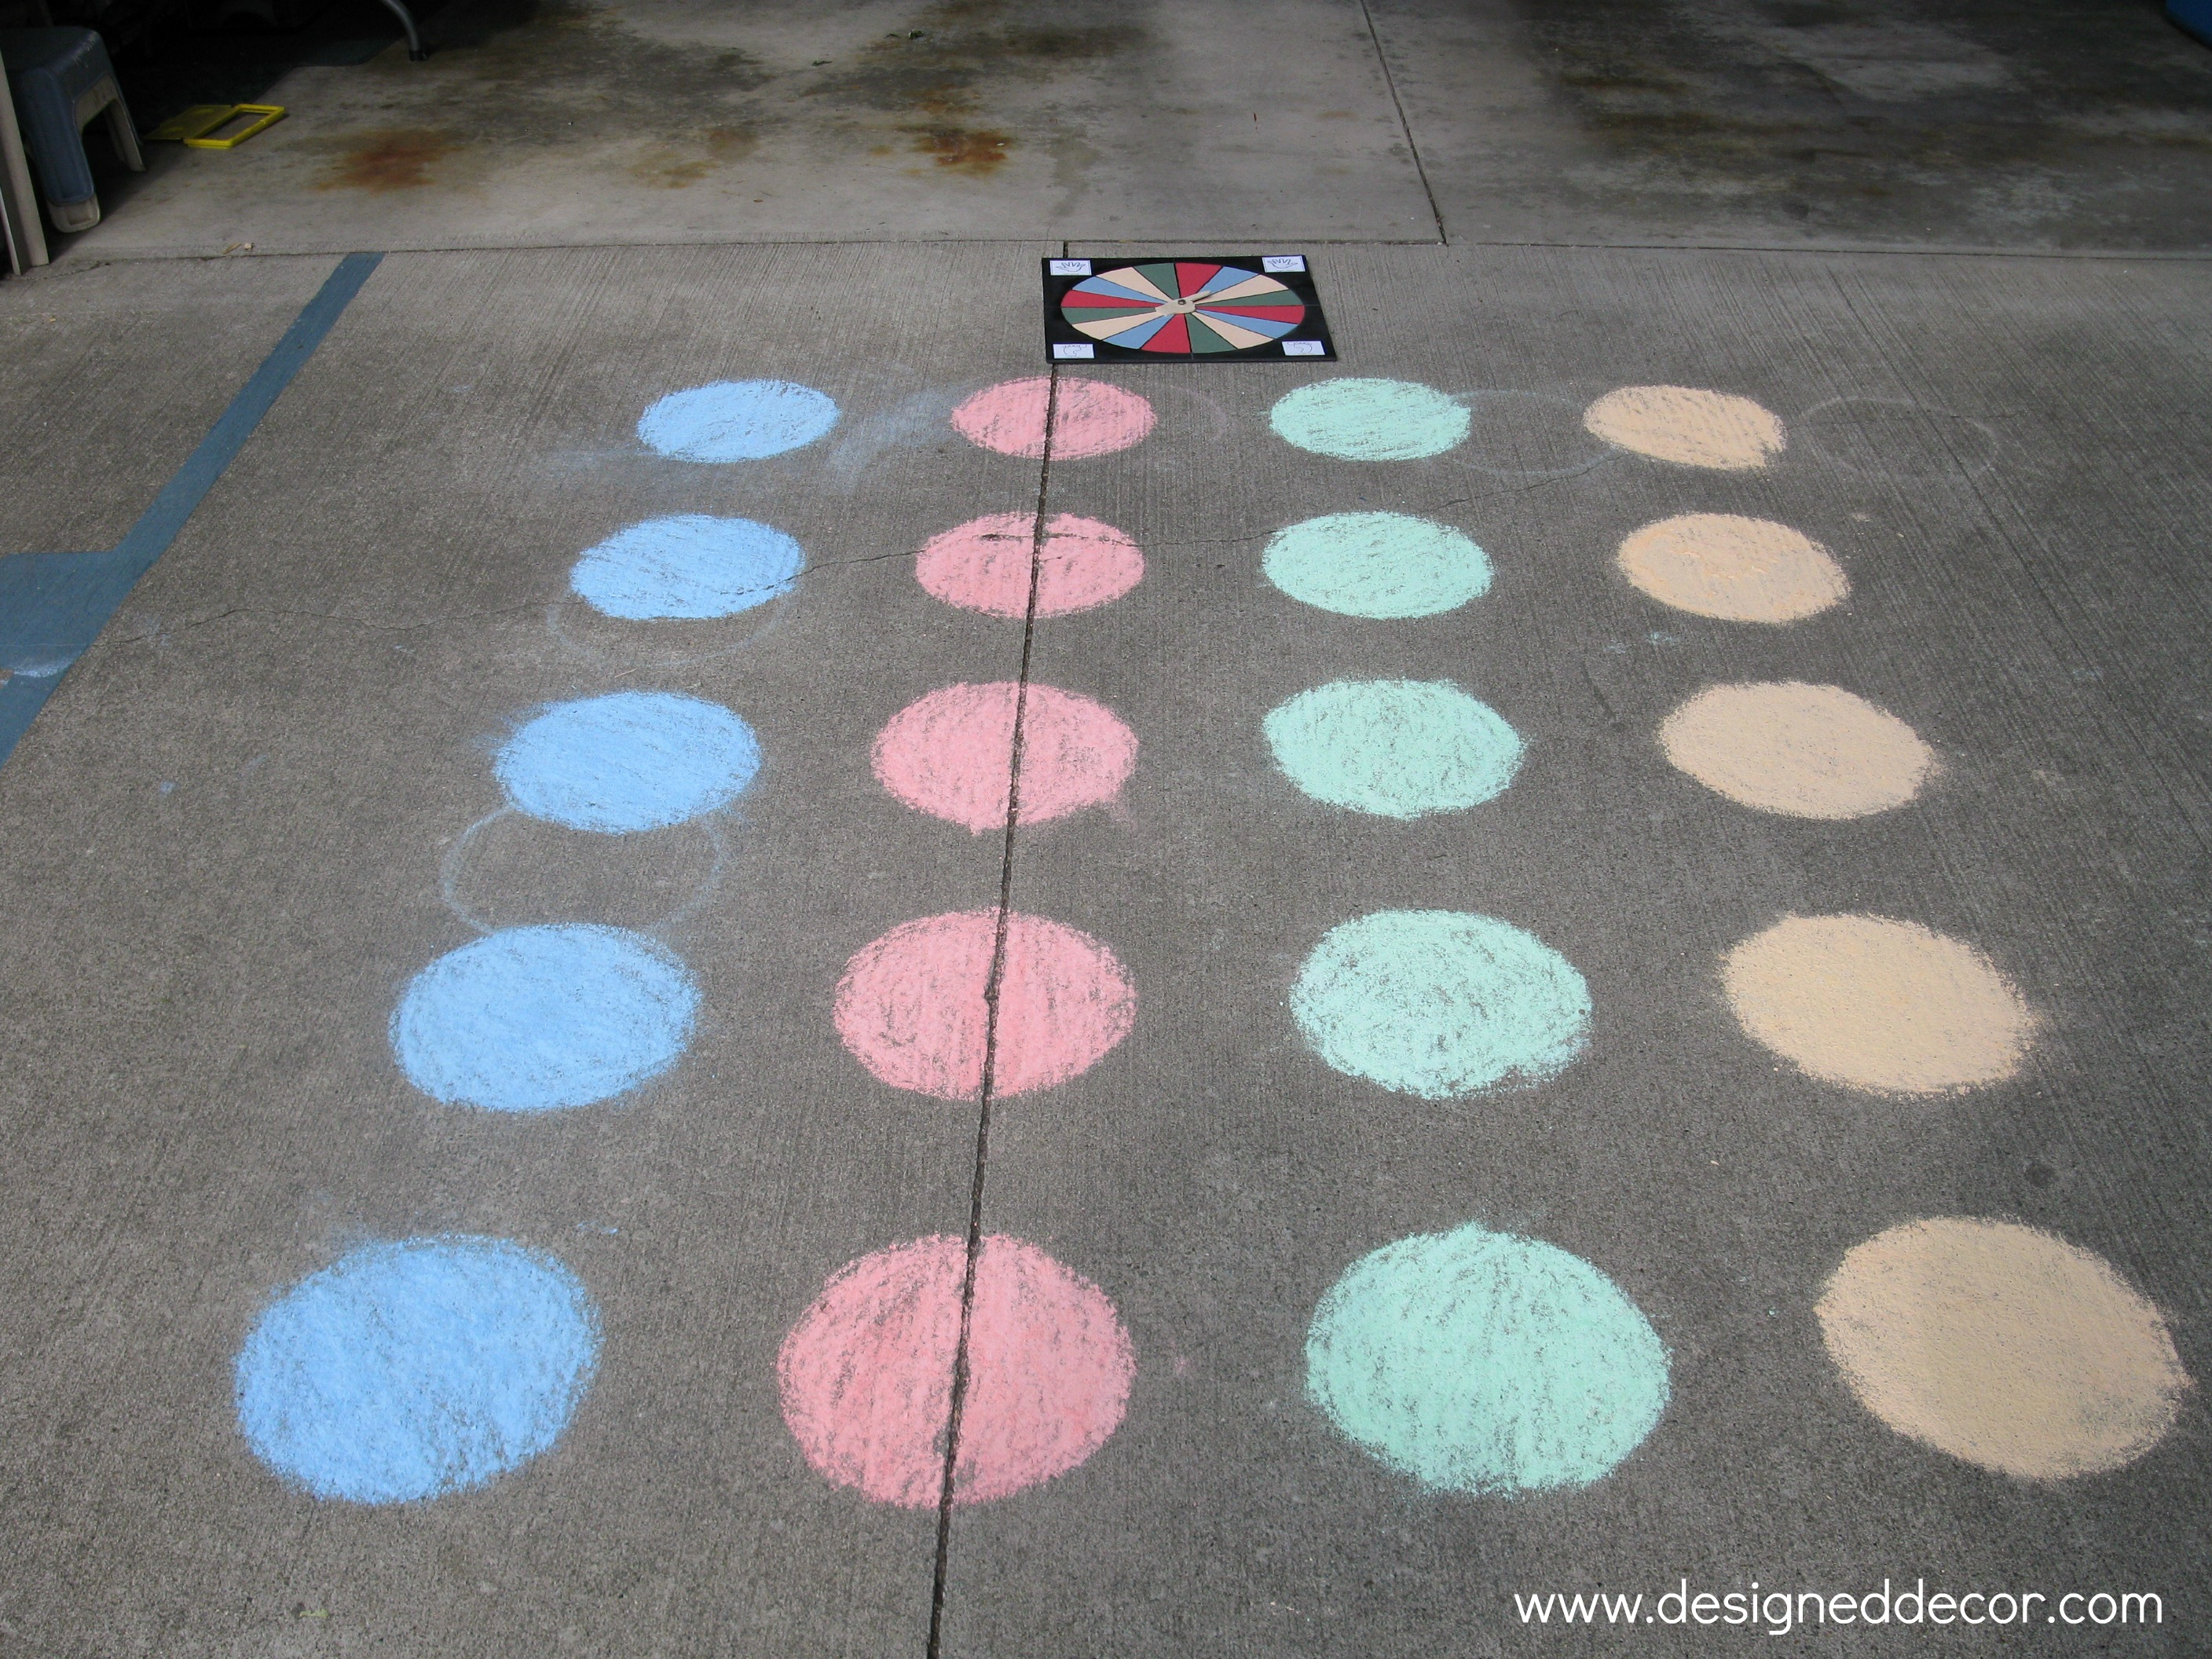 Diy twister game designed decor diy twister game solutioingenieria Image collections